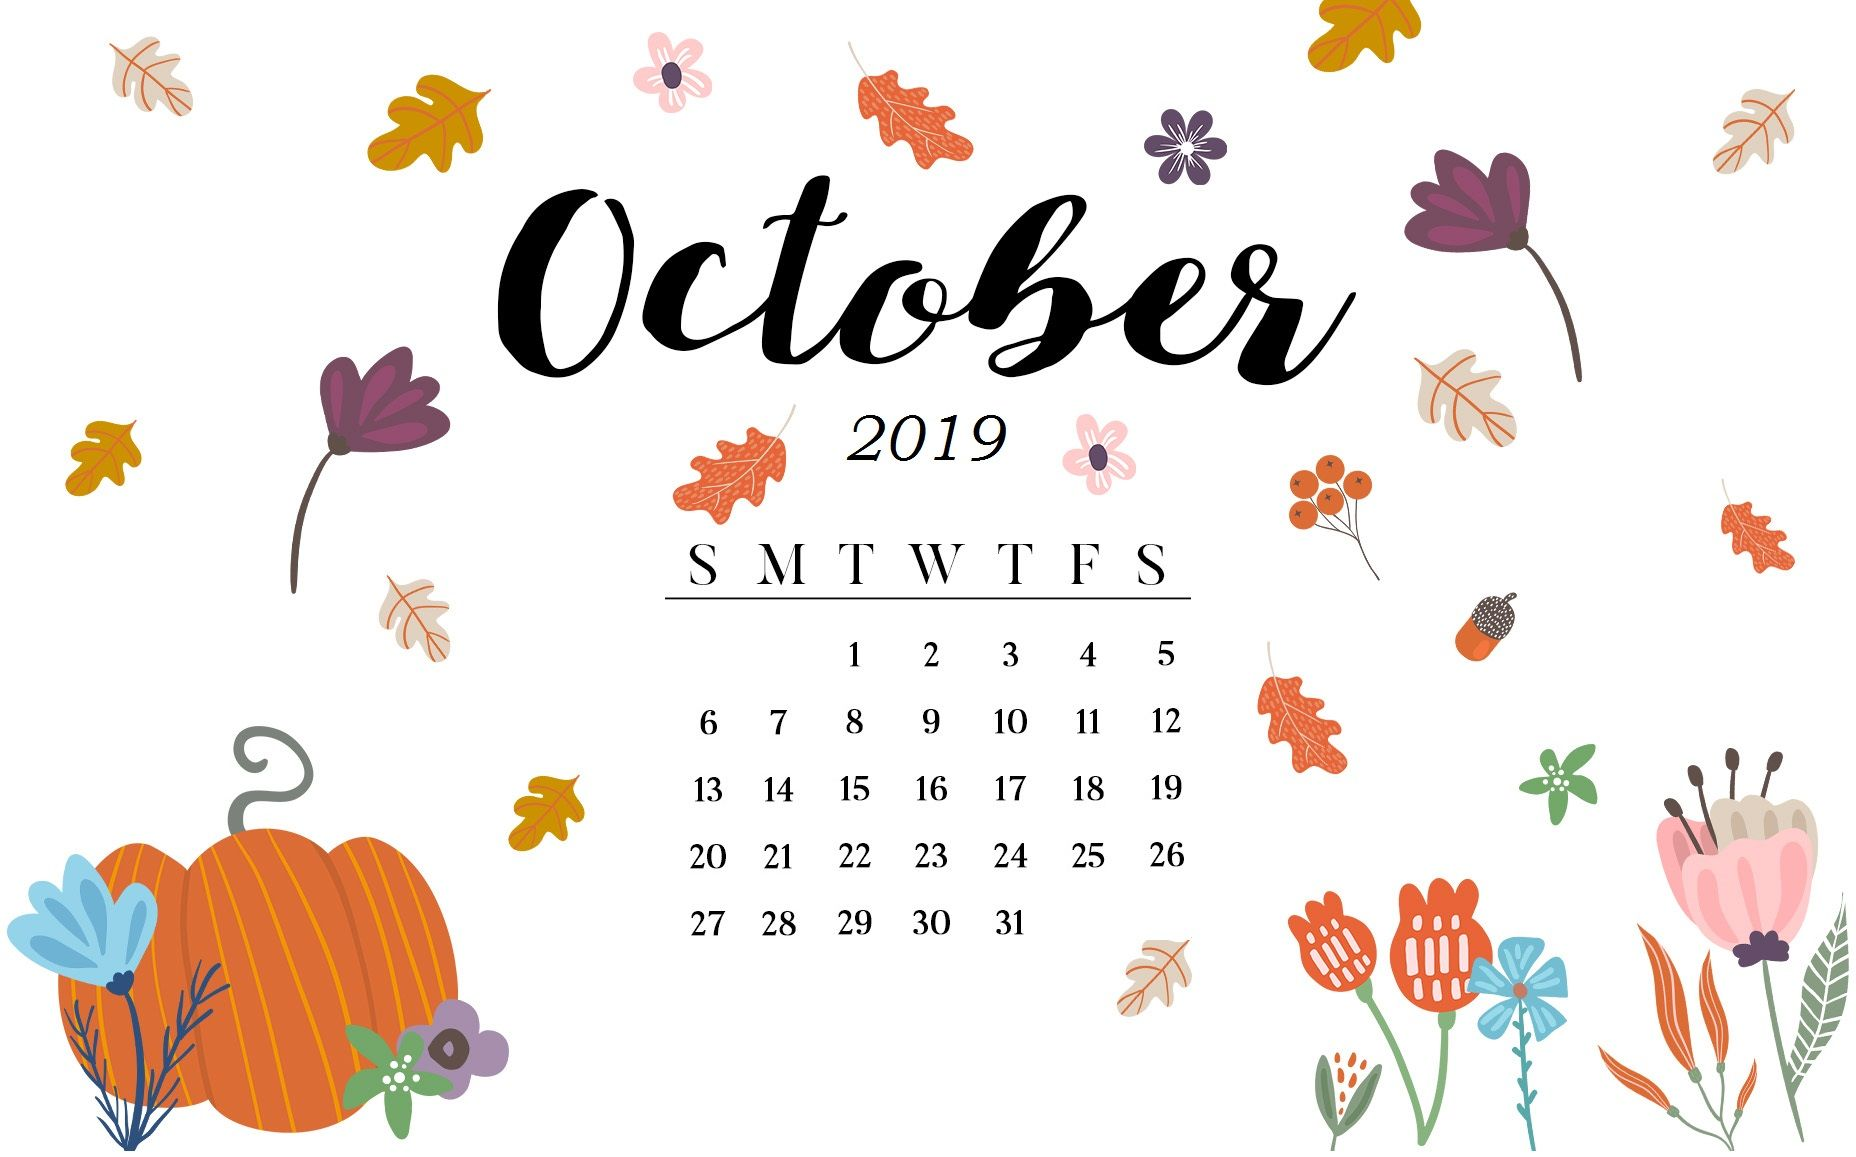 Floral November 2018 iPhone Calendar Iphone wallpaper